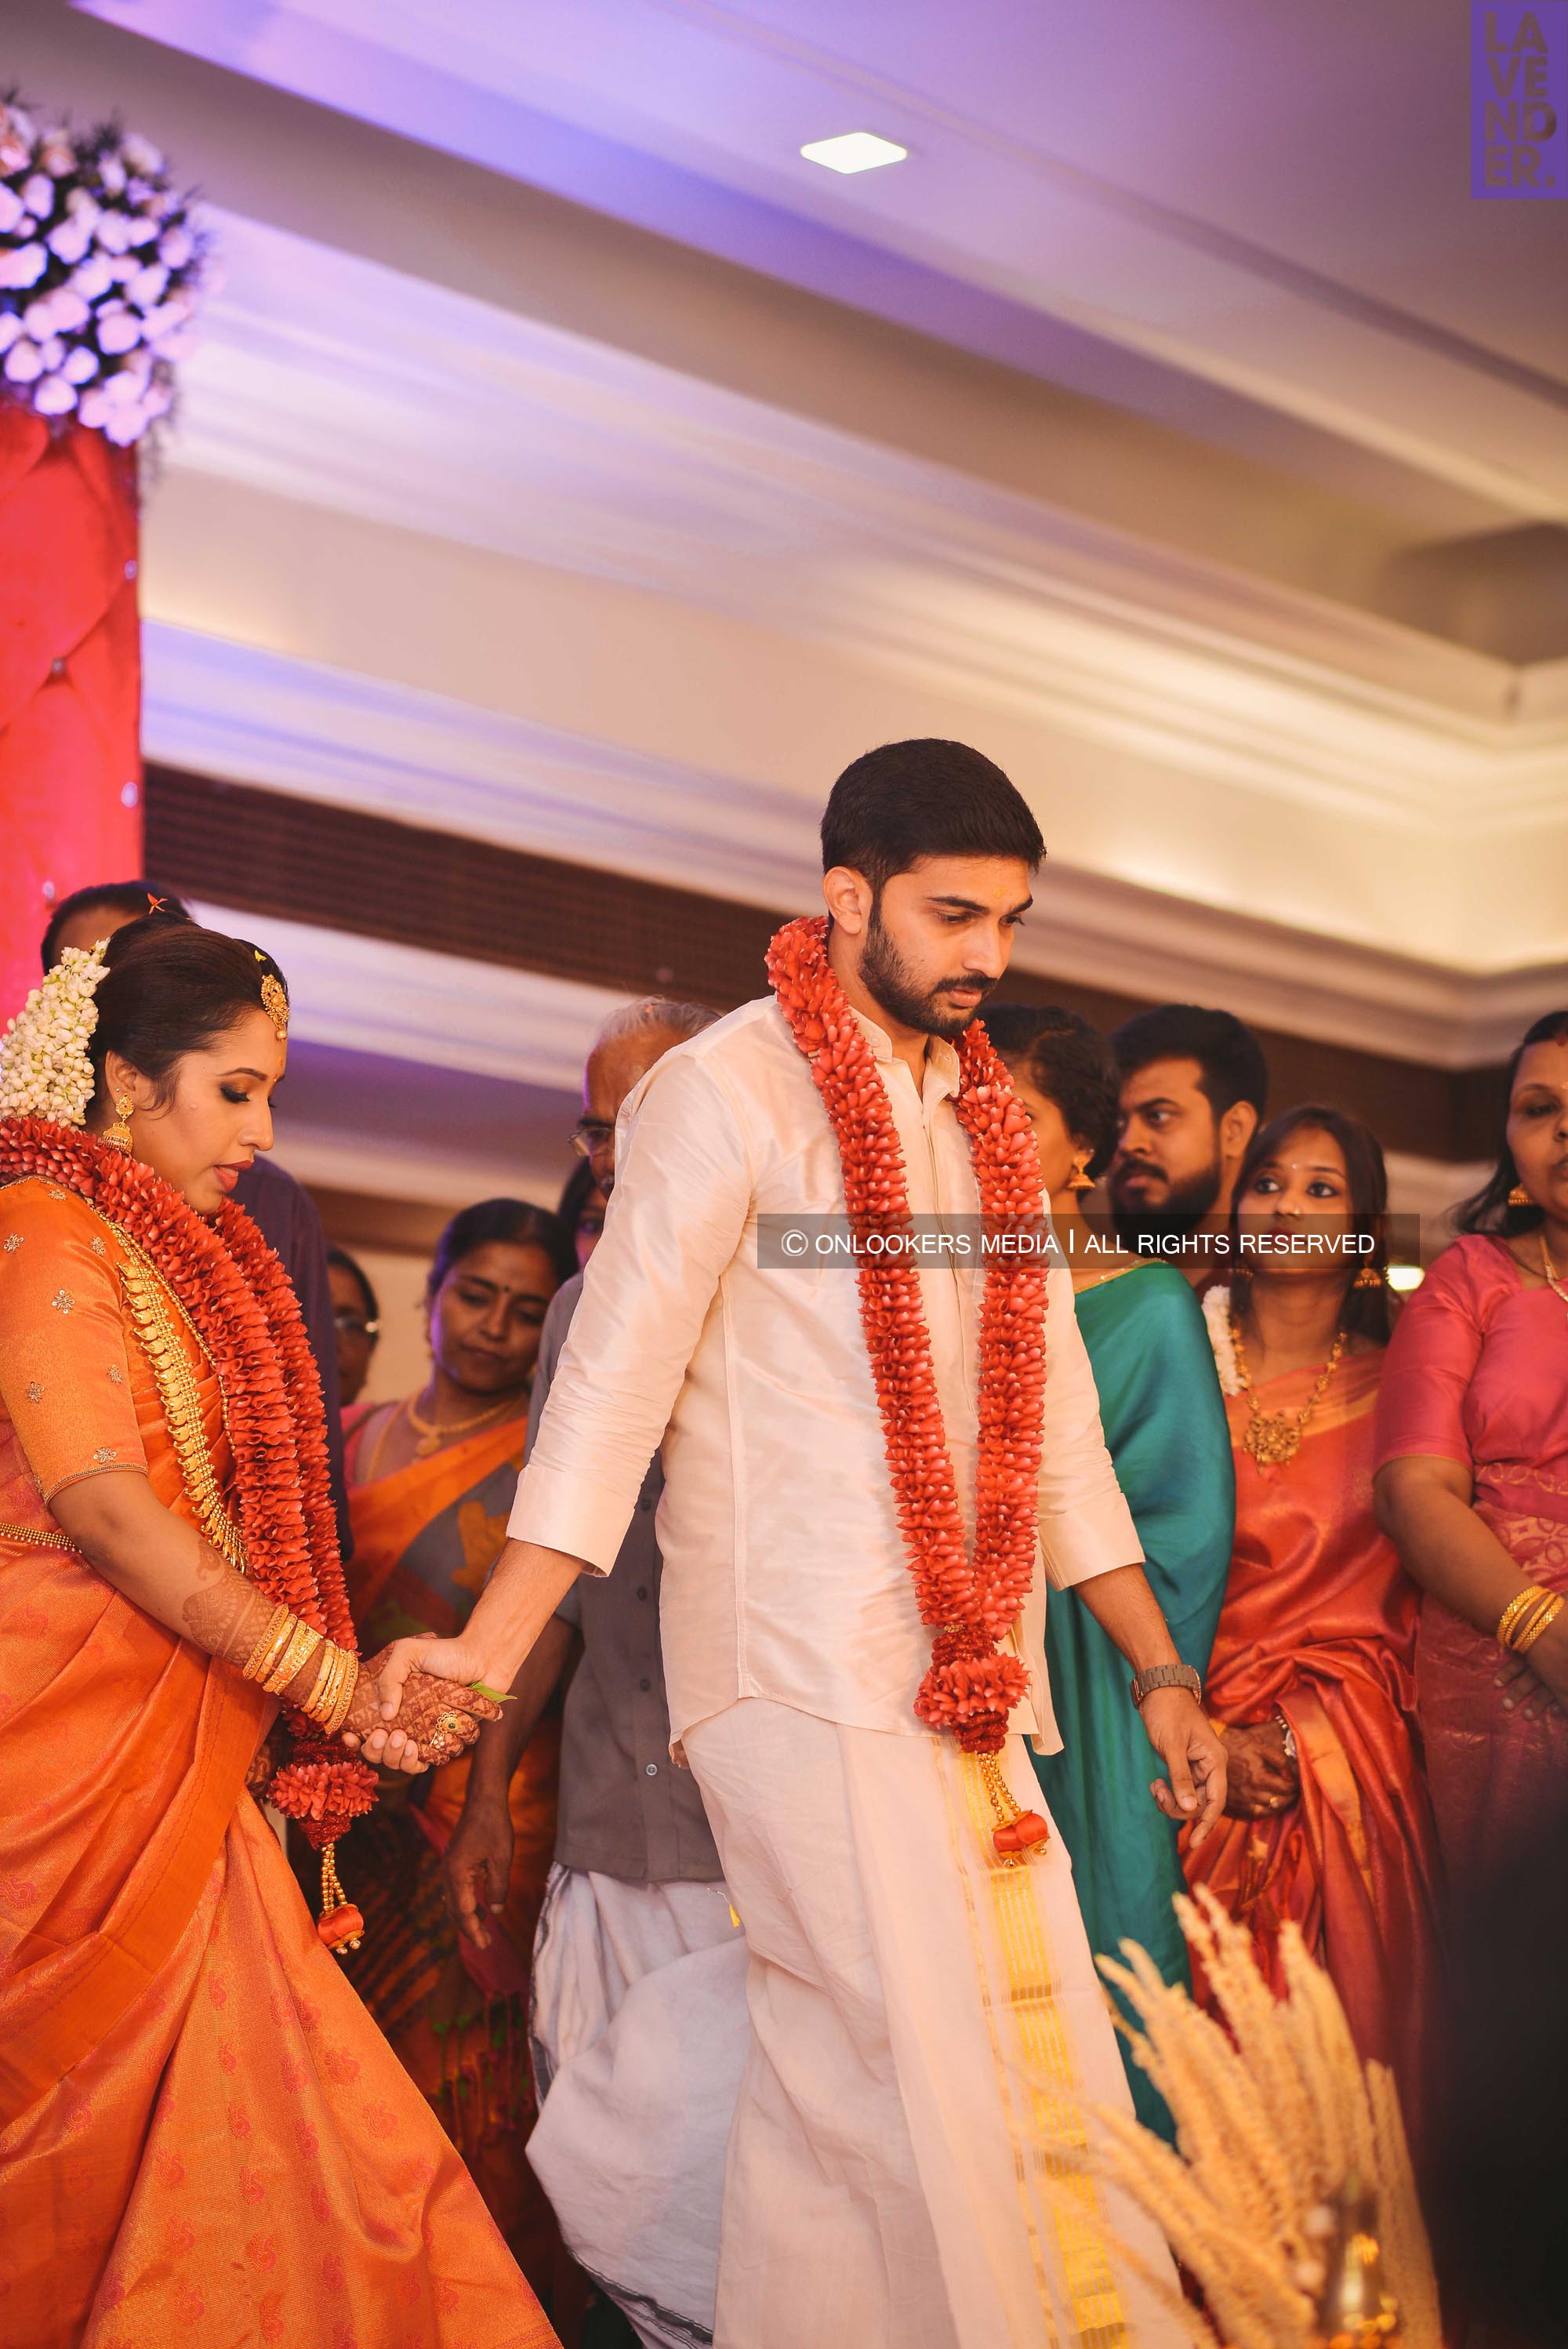 http://onlookersmedia.in/wp-content/uploads/2018/05/sreejith-vijay-wedding-stills-images-63.jpg